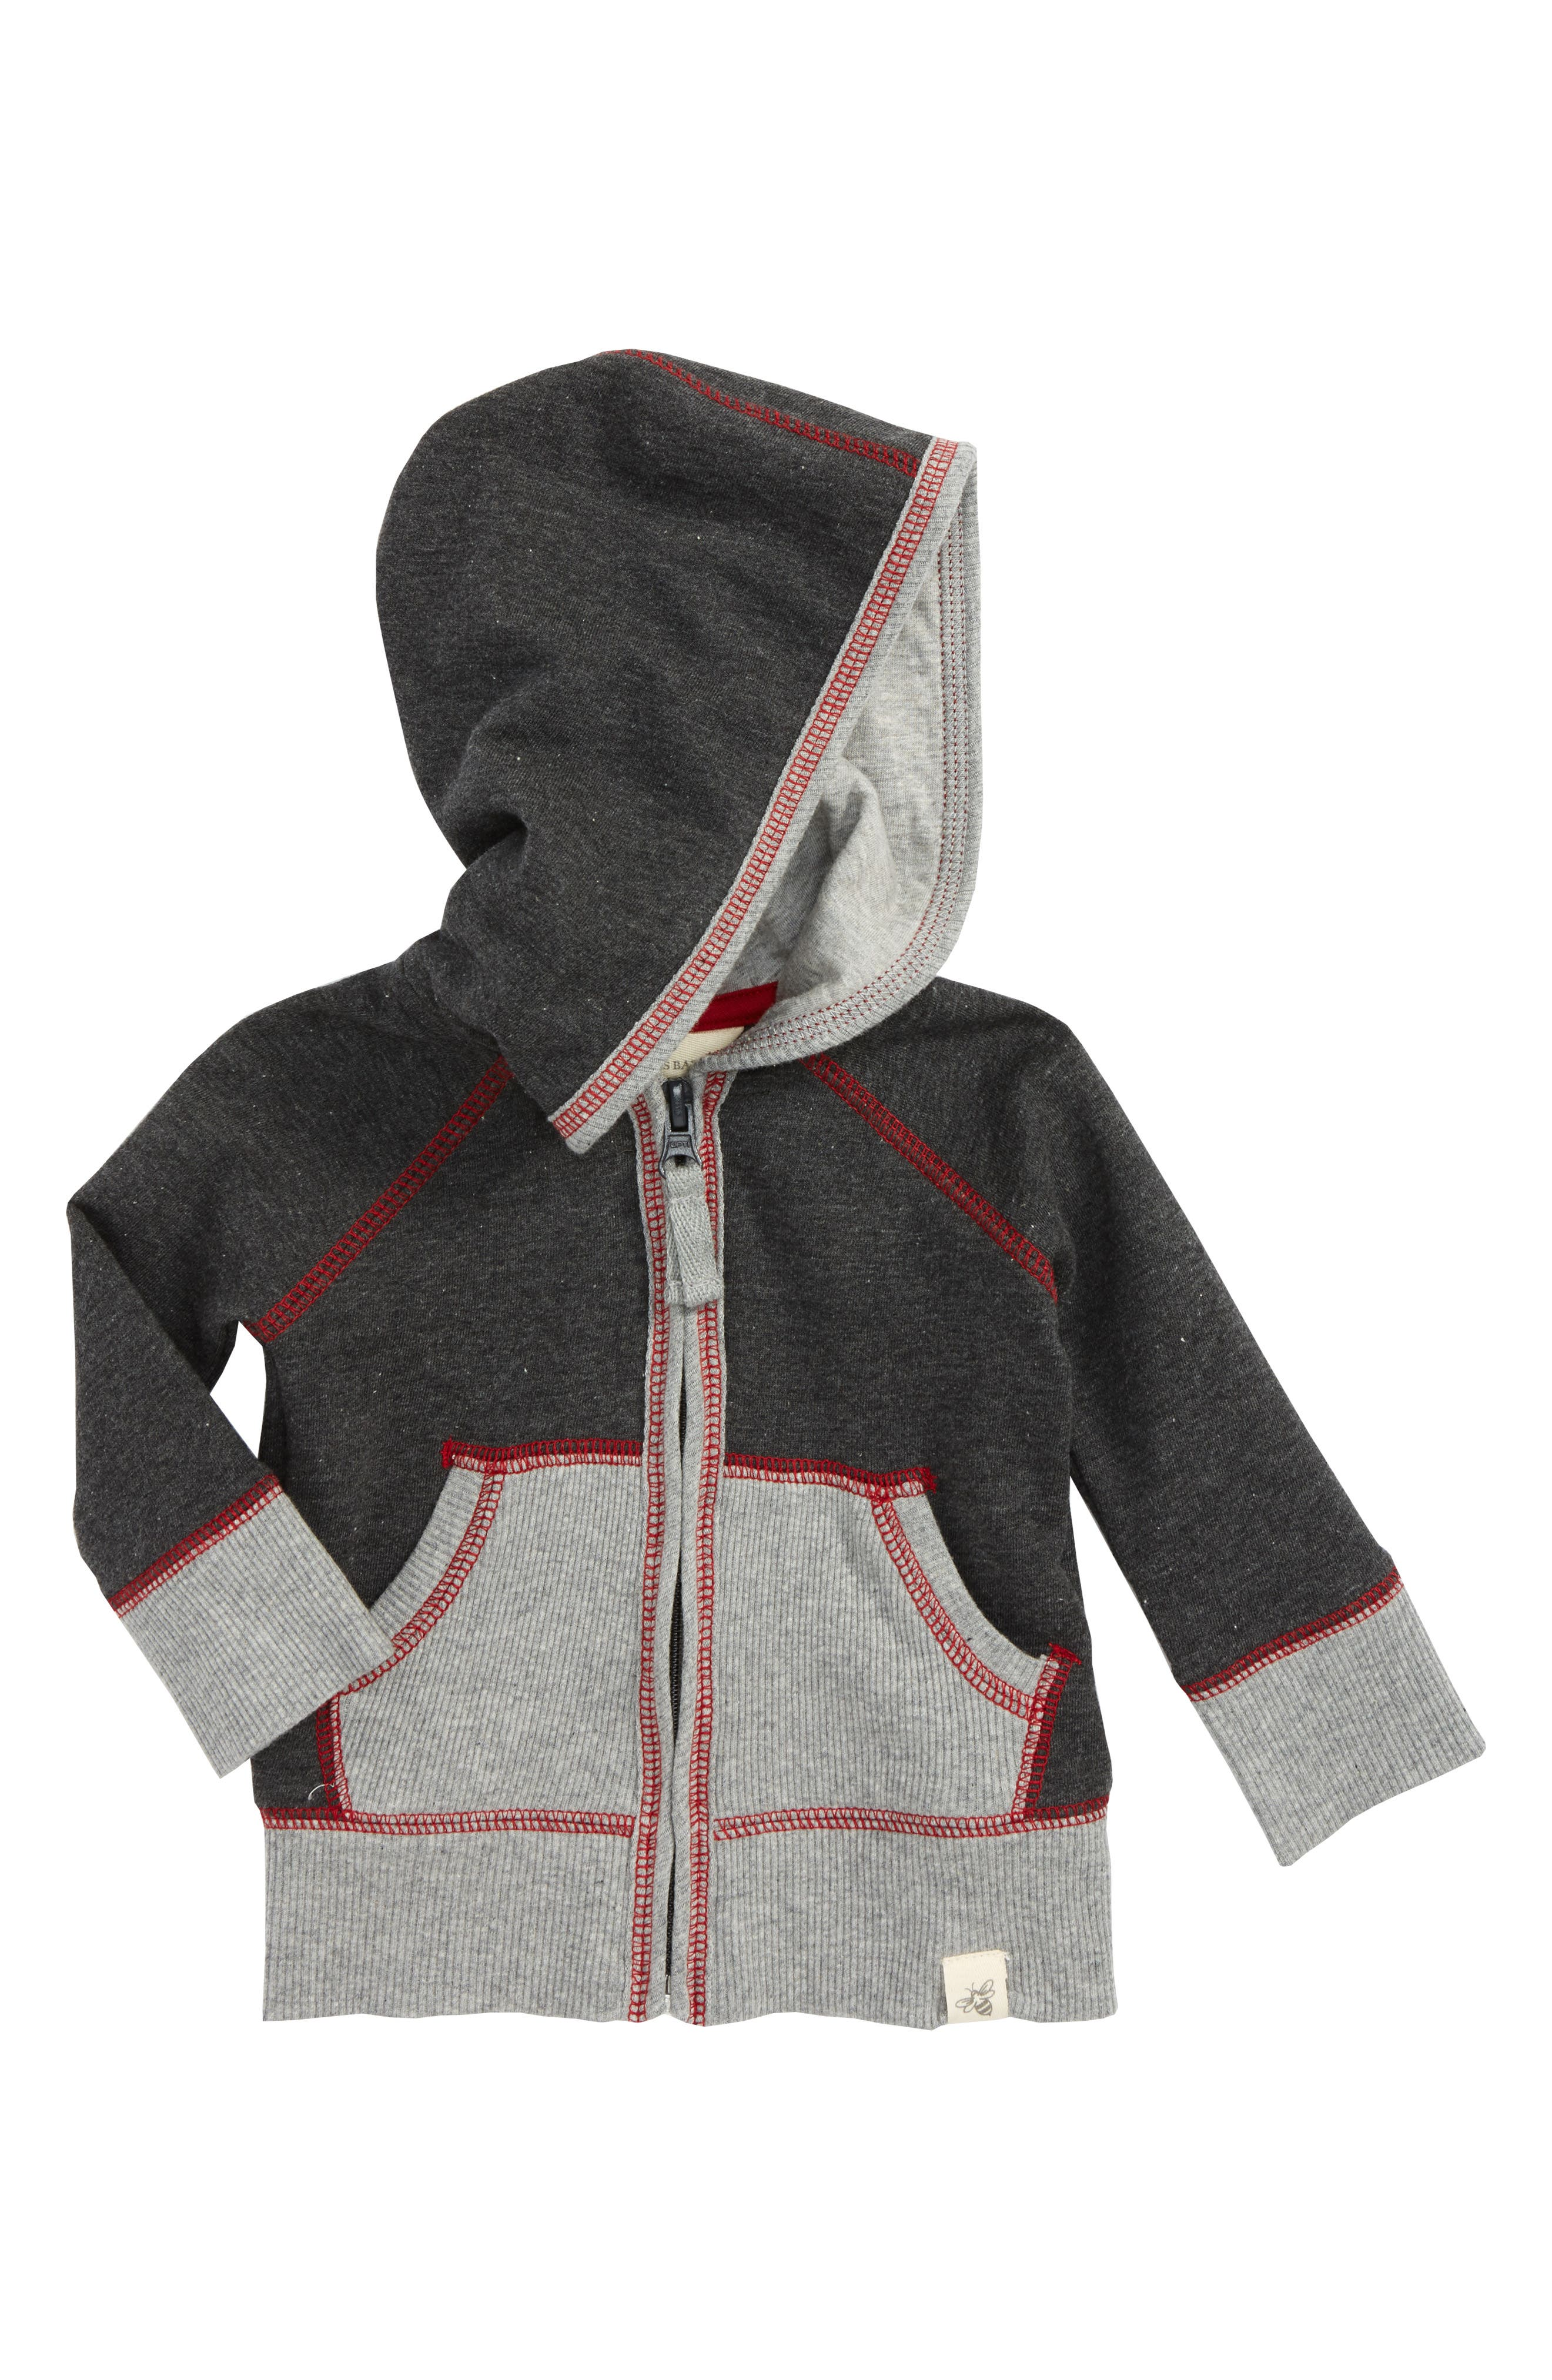 Alternate Image 1 Selected - Burt's Bees Baby French Terry Organic Cotton Hoodie (Baby Boys)